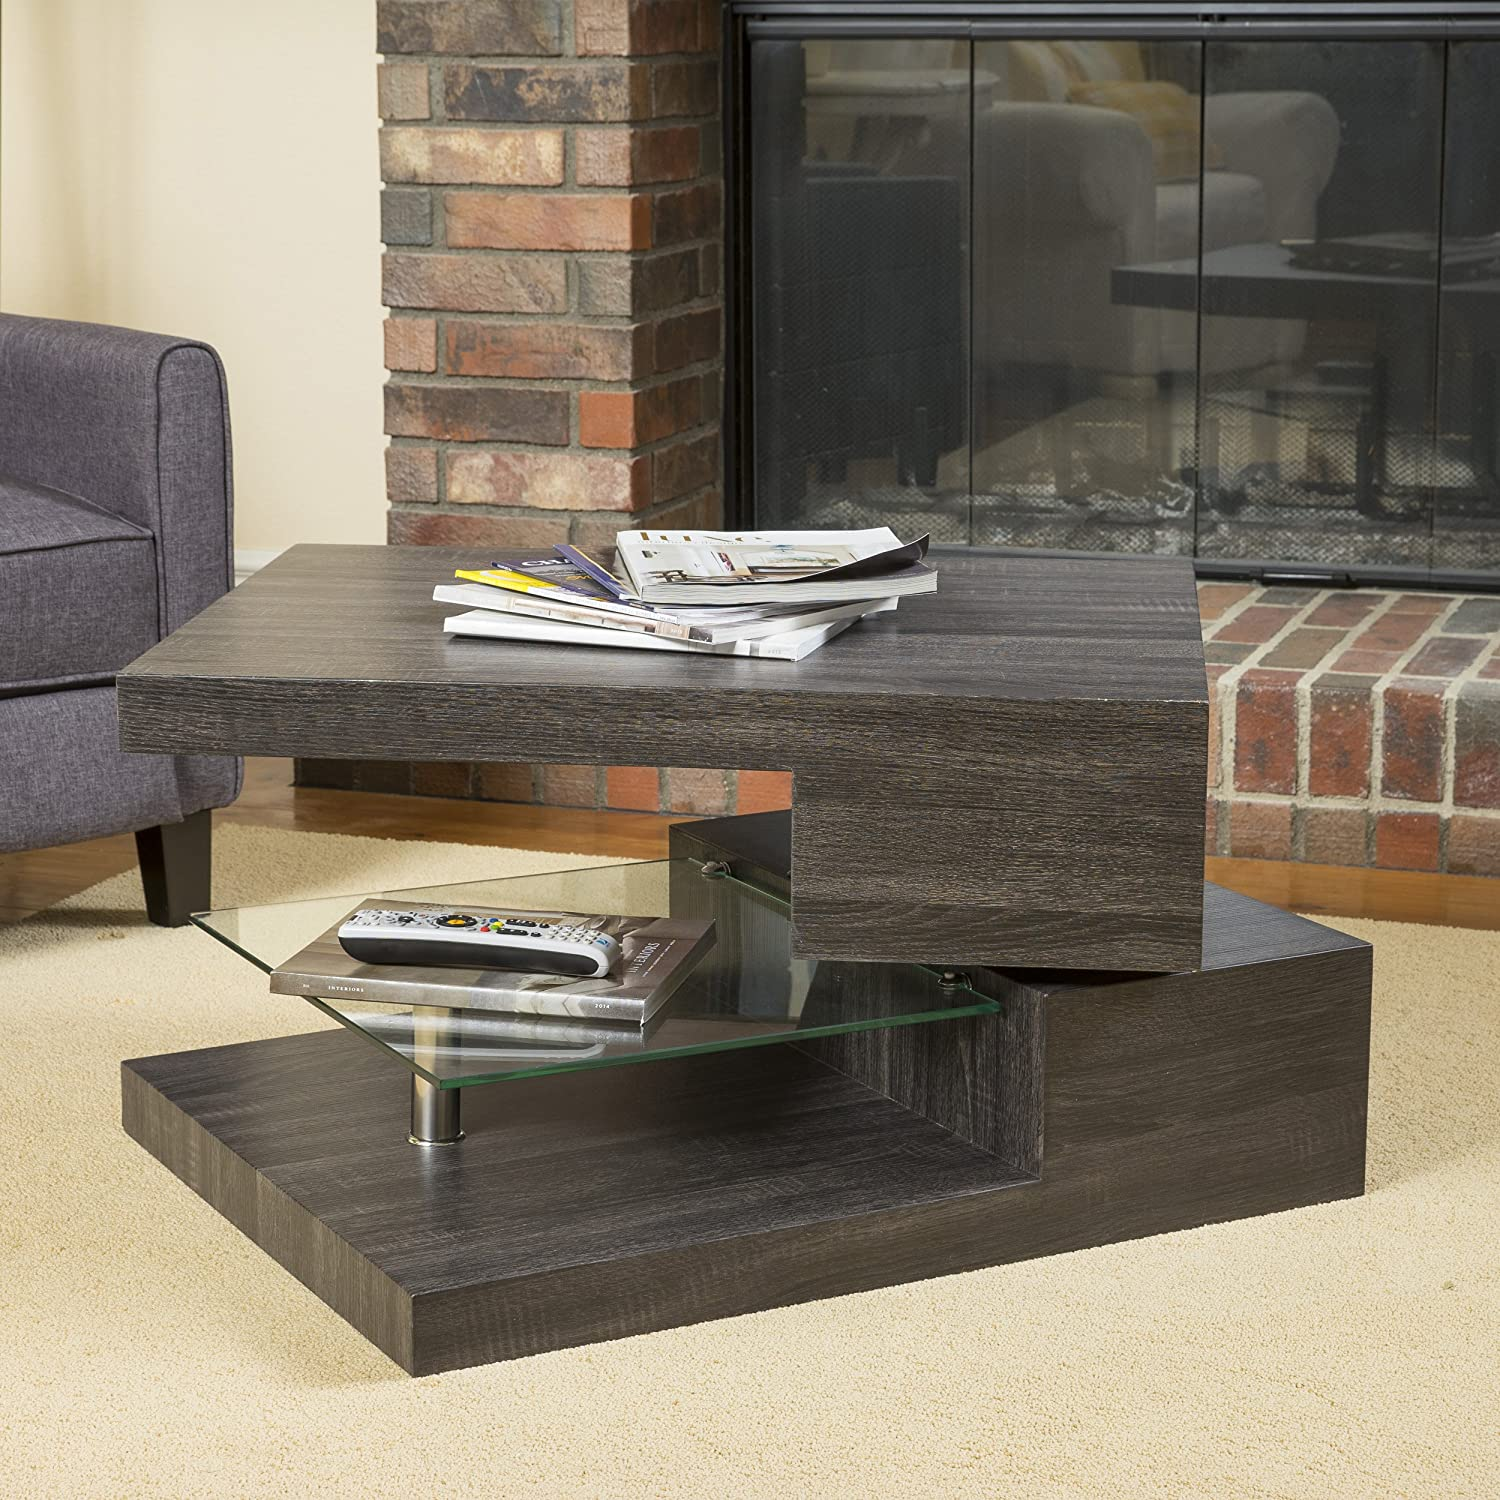 Details - 15 Coffee Tables Under $200: Unique, Modern, Cool, Wood, Glass